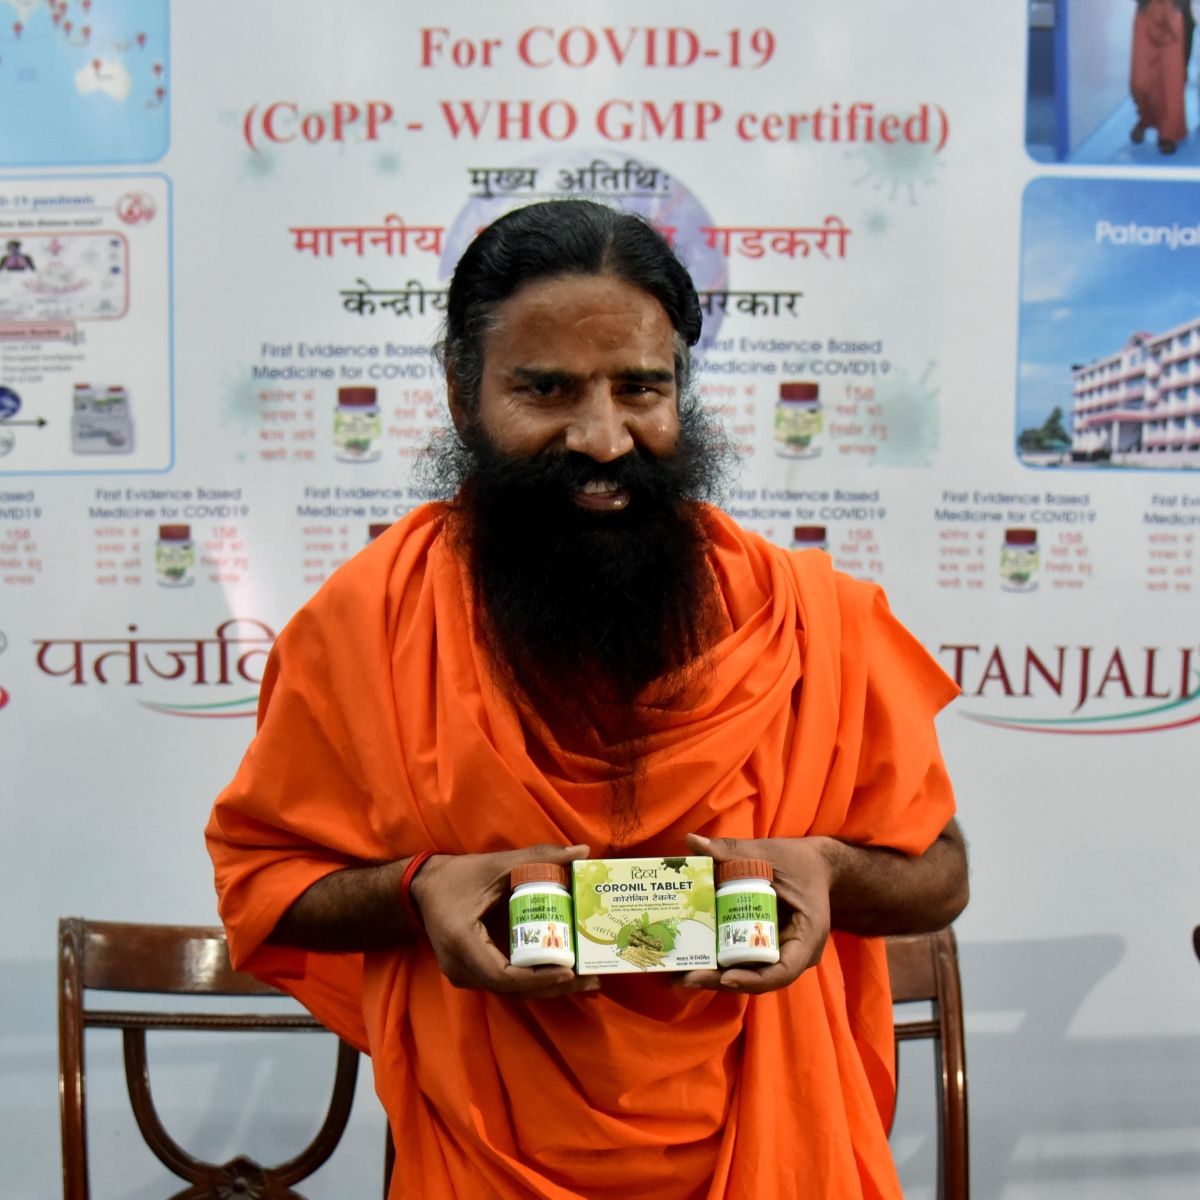 'Shocked to note the blatant lie': IMA objects to Patanjali Ayurved's claim on Coronil